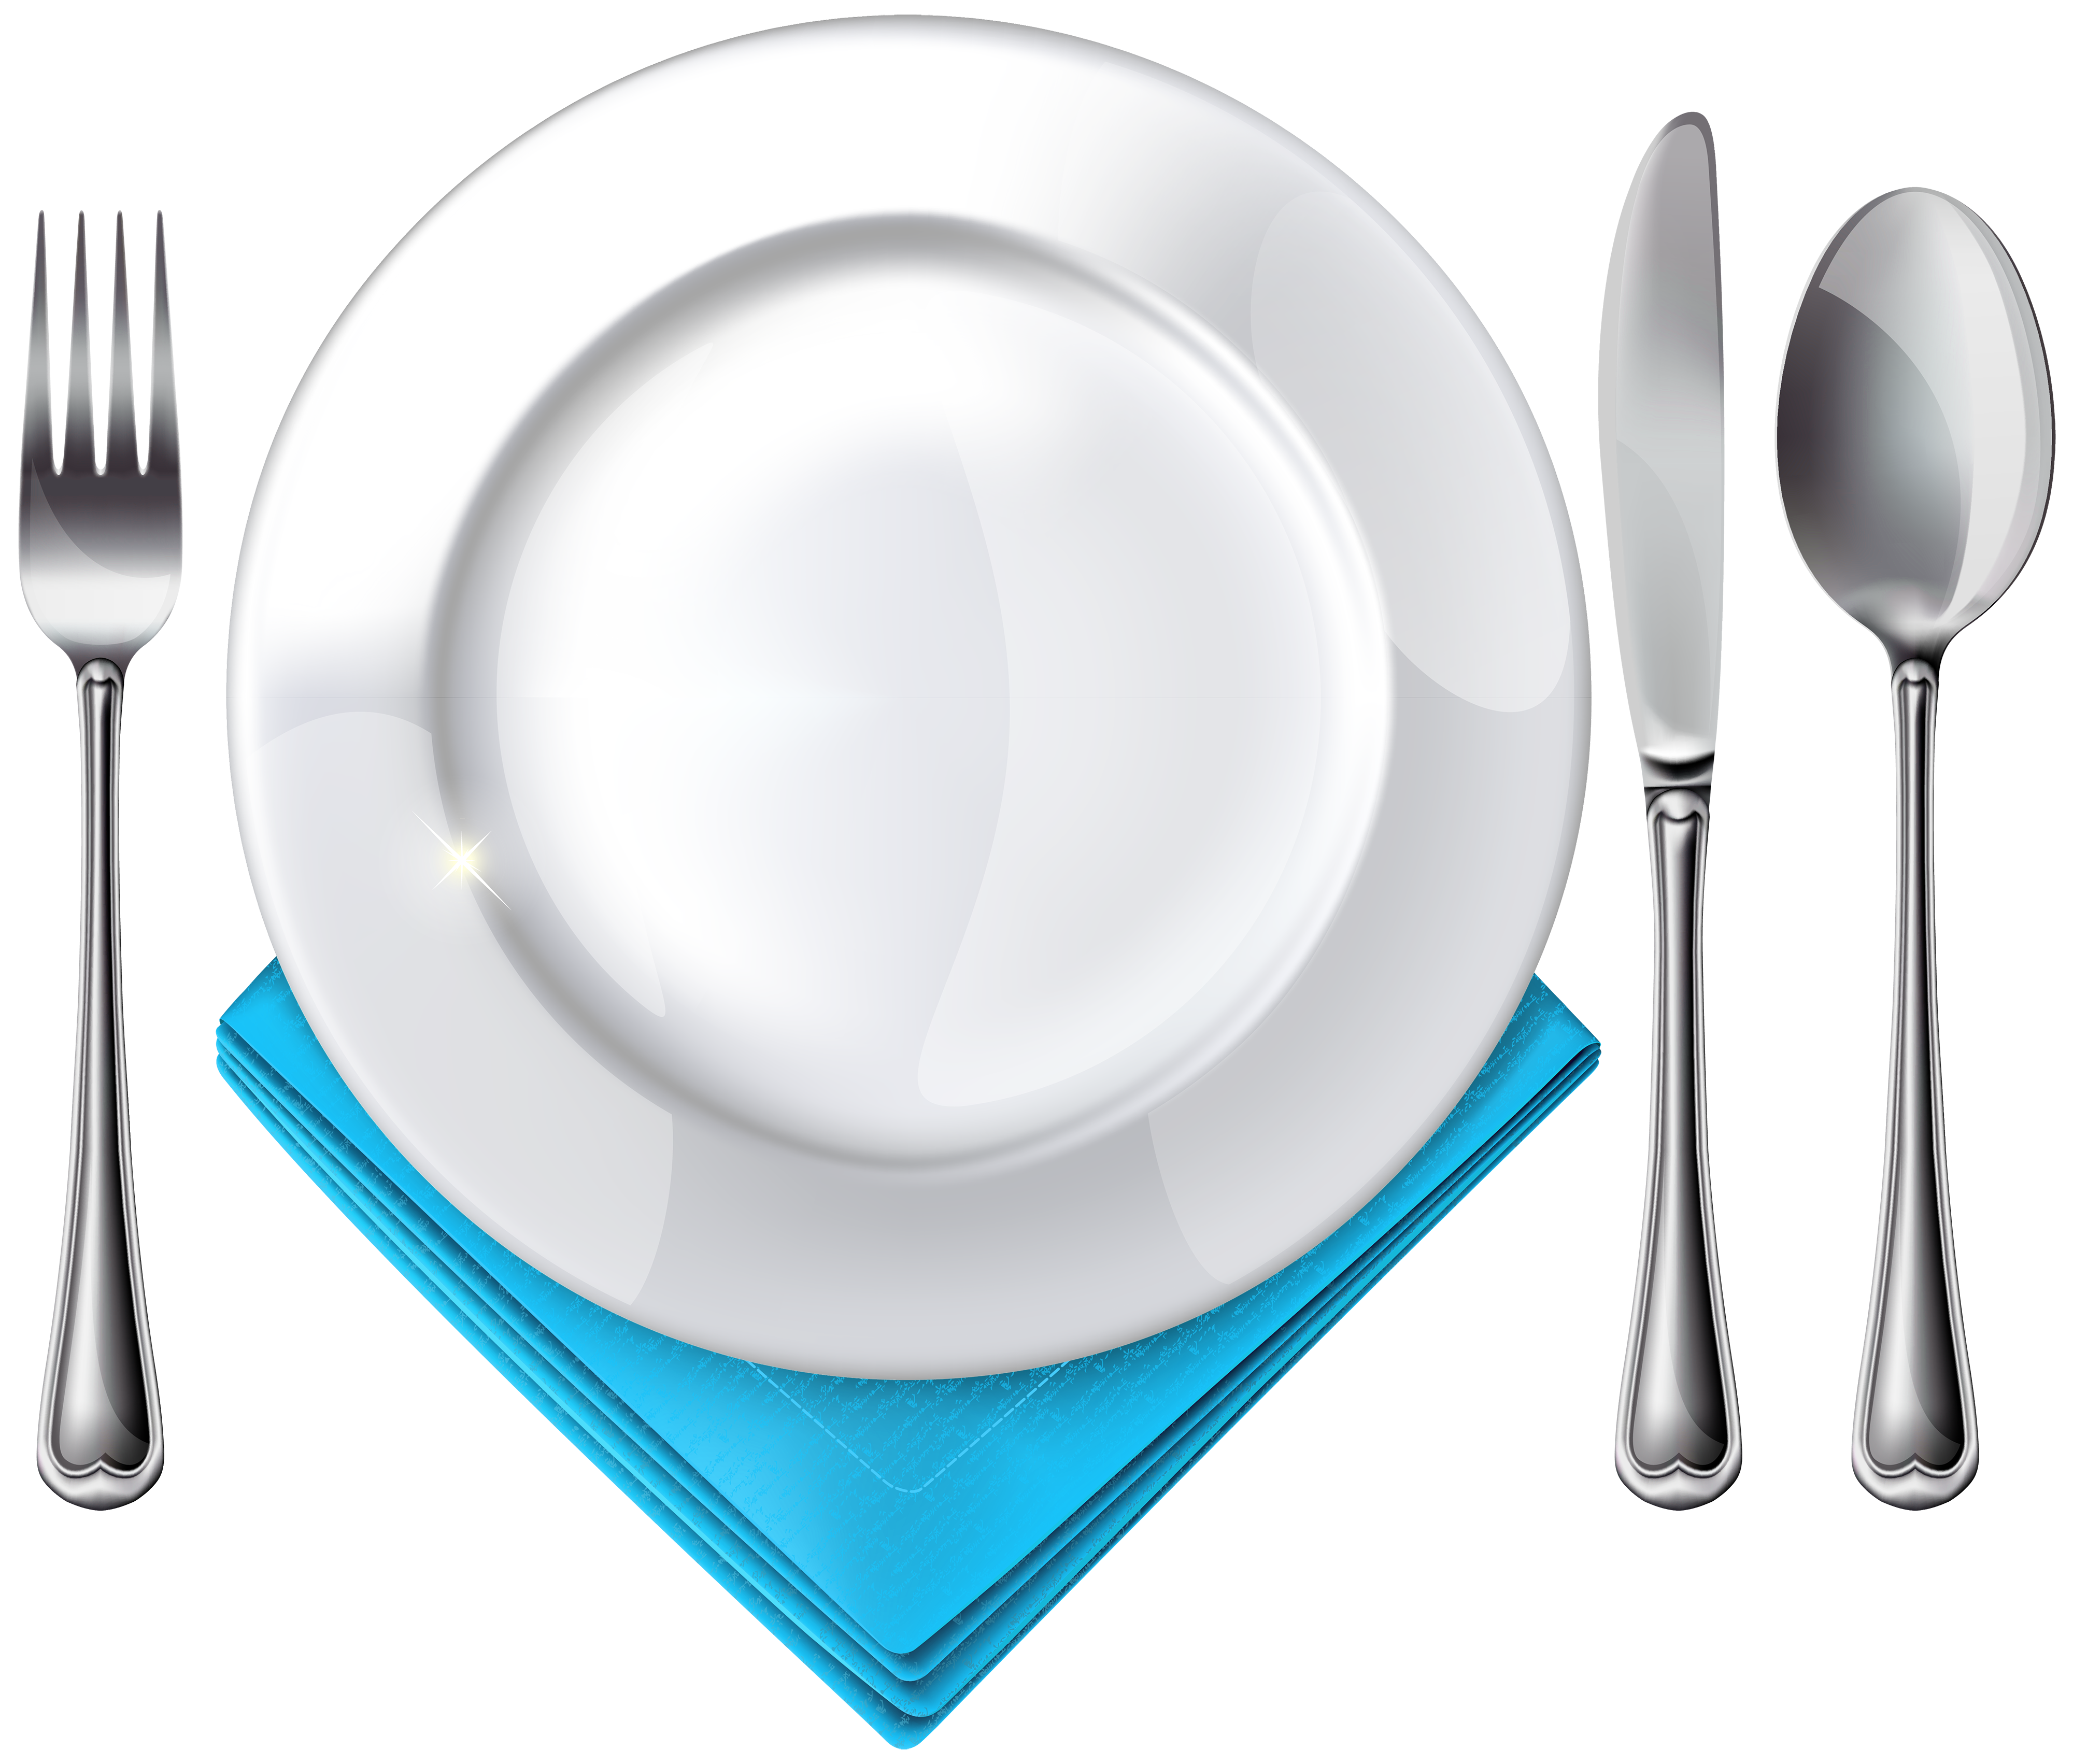 Fork spoon house clipart jpg transparent library Plate Spoon Knife Fork and Blue Napkin PNG Clipart - Best WEB Clipart jpg transparent library